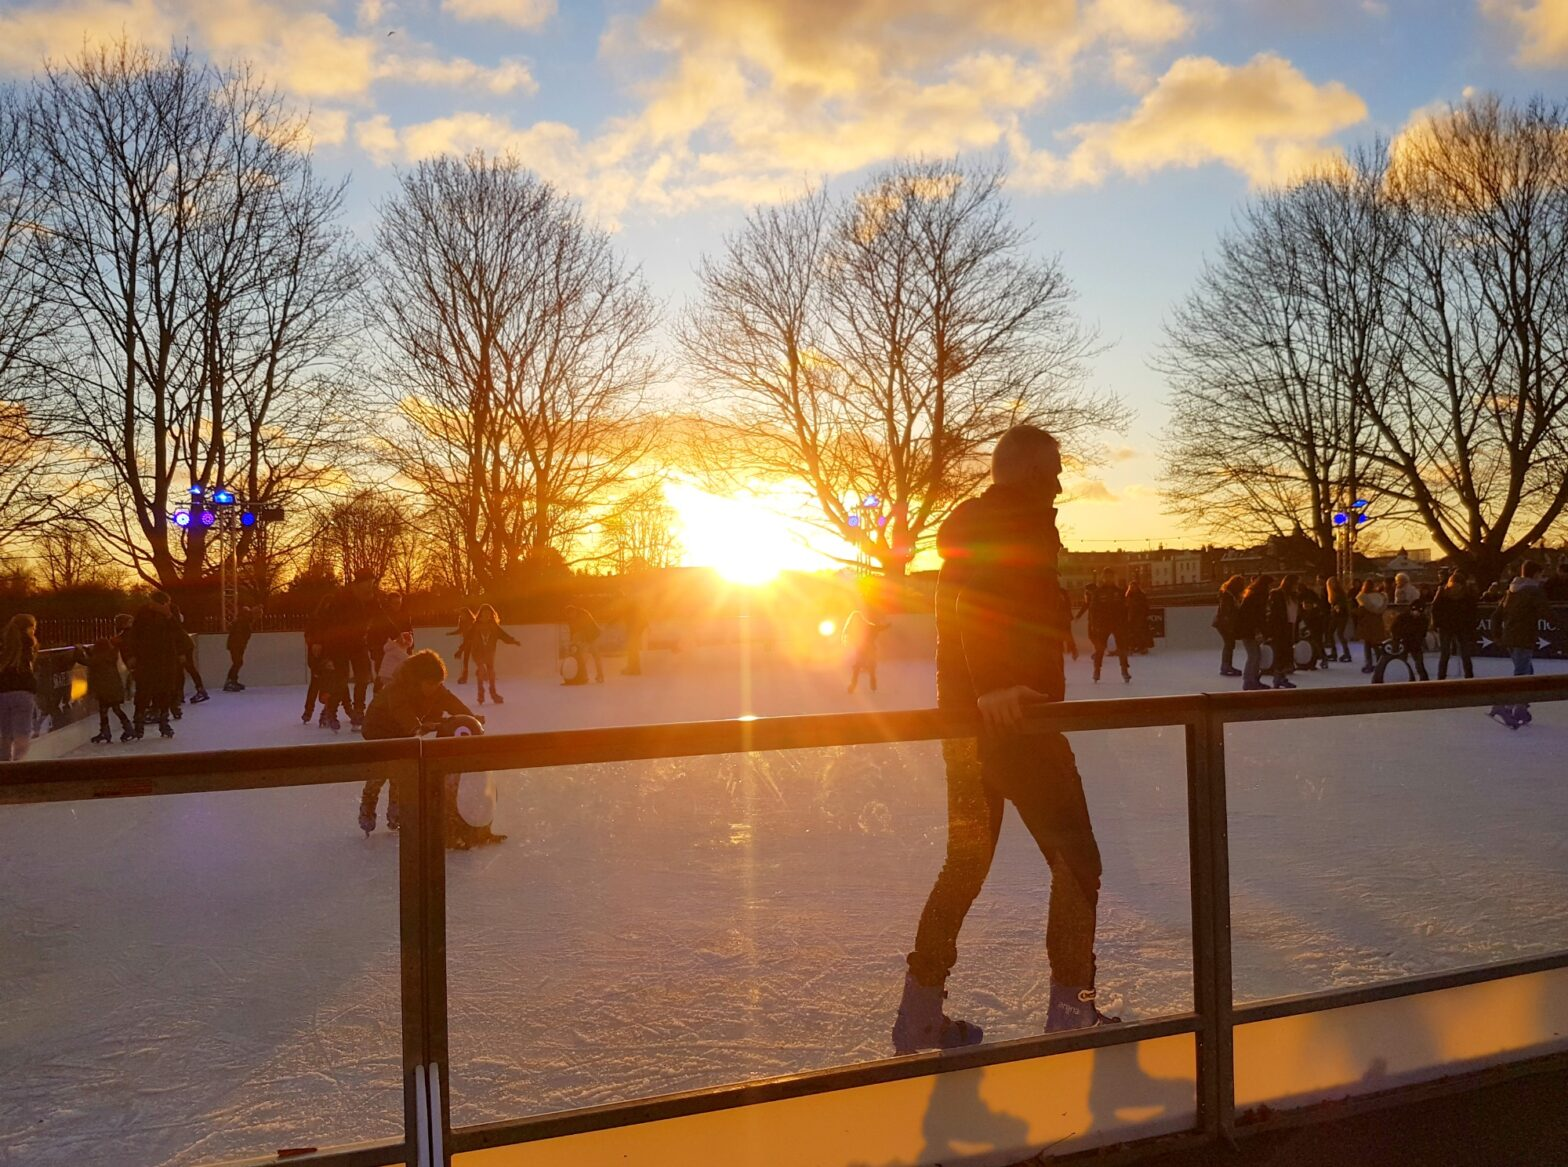 People silhouetted against the setting sun on one of the pop-up Christmas ice rinks in London at Hampton Court Palace - the best places to ice skate in London with kids